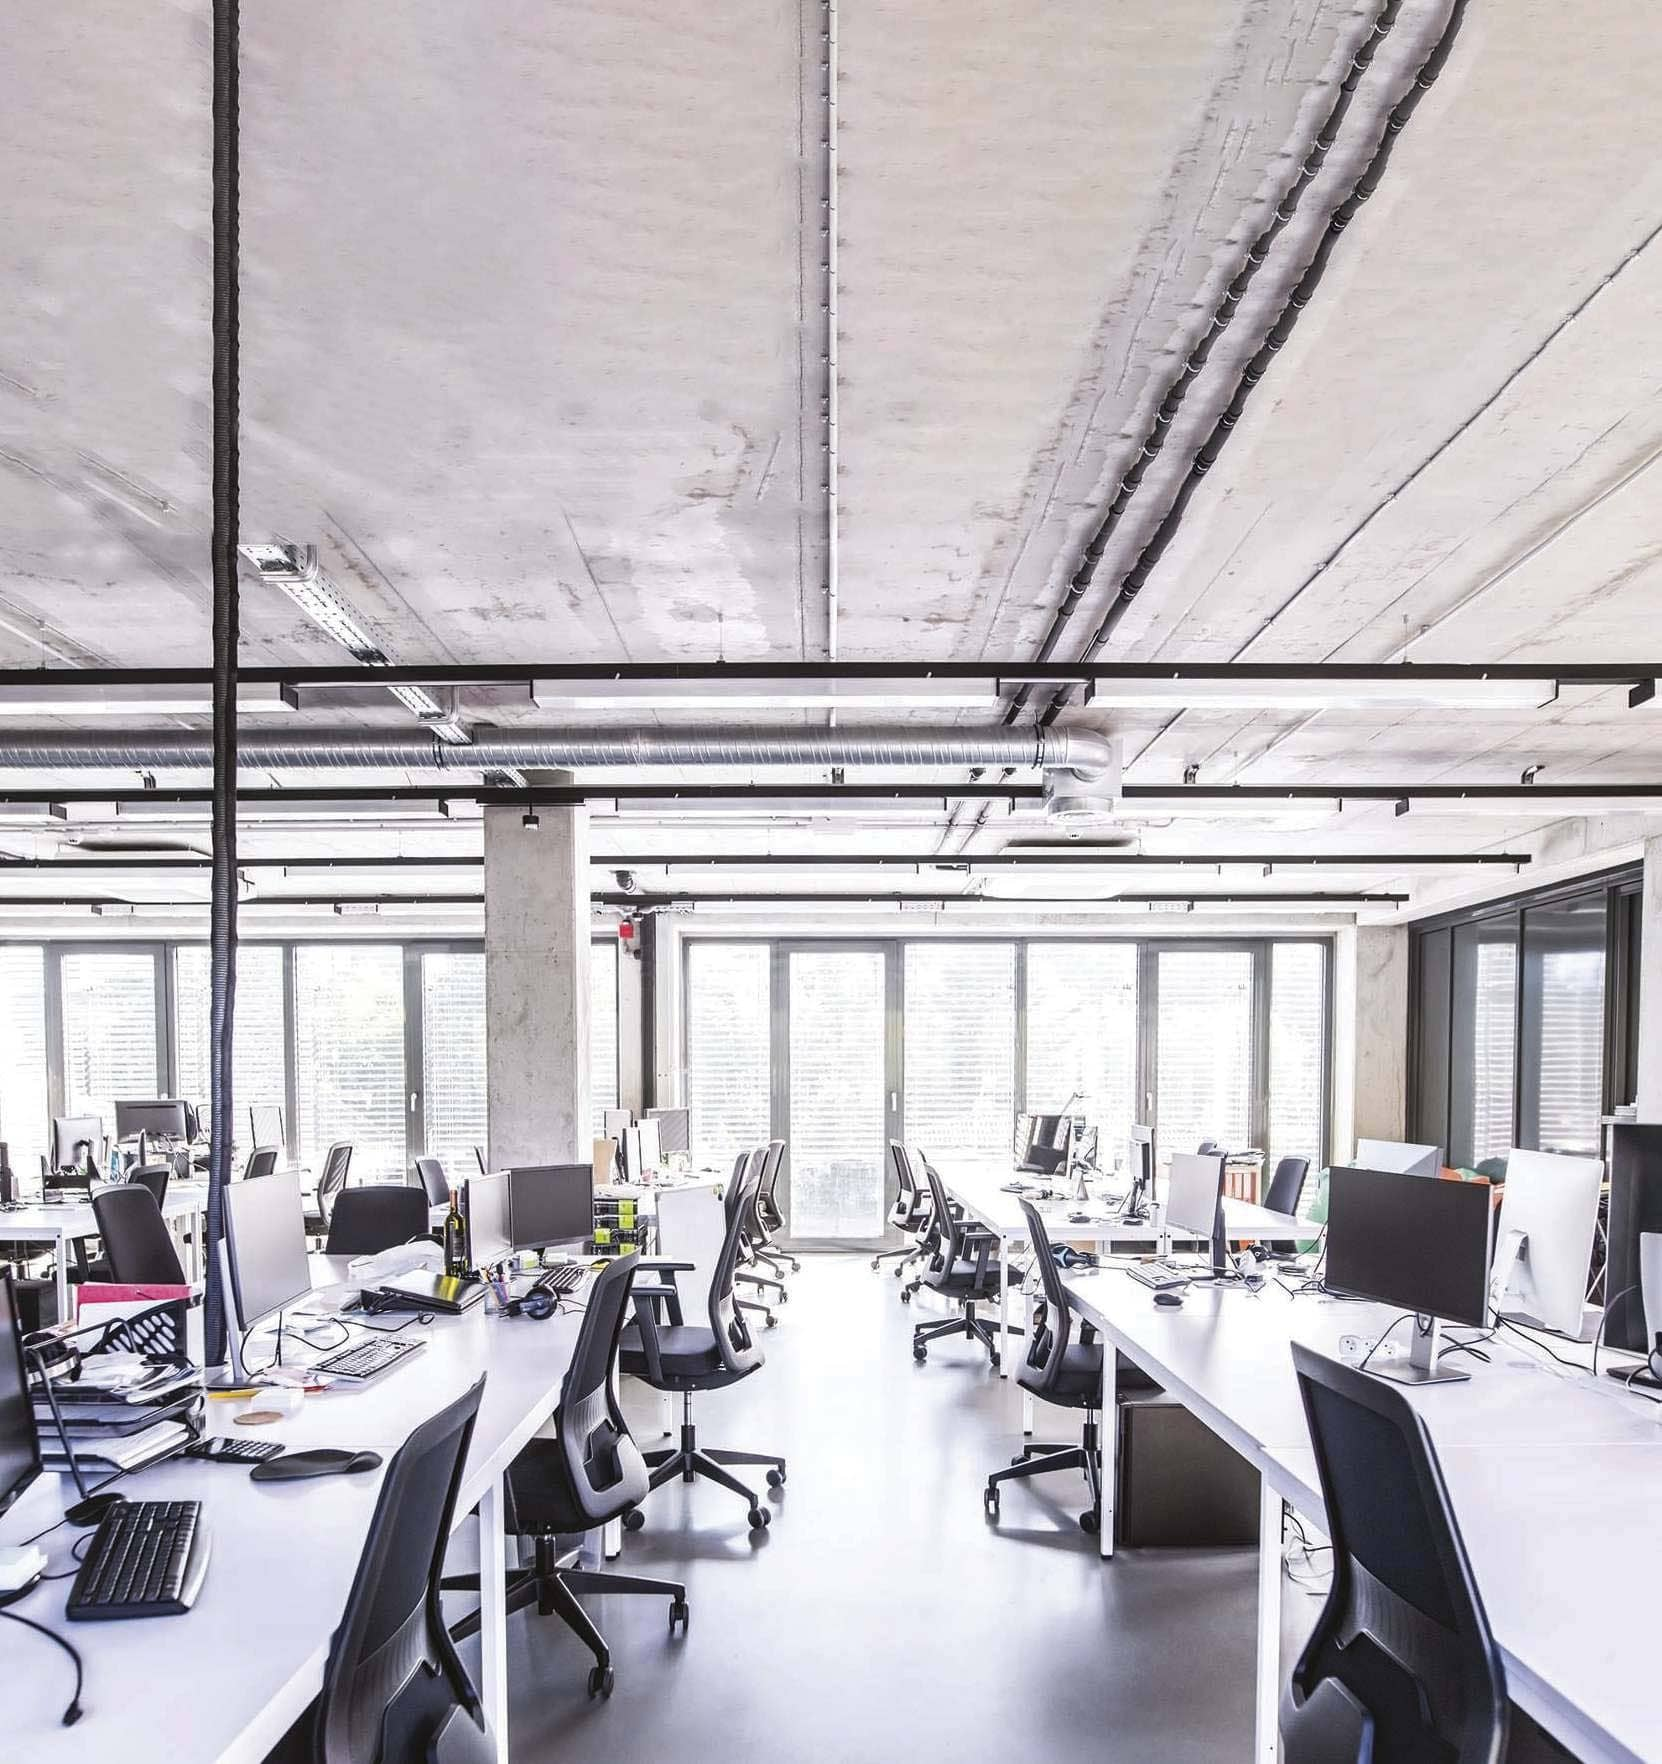 Return To Work: Does Covid-19 Mark The End Of The Office?